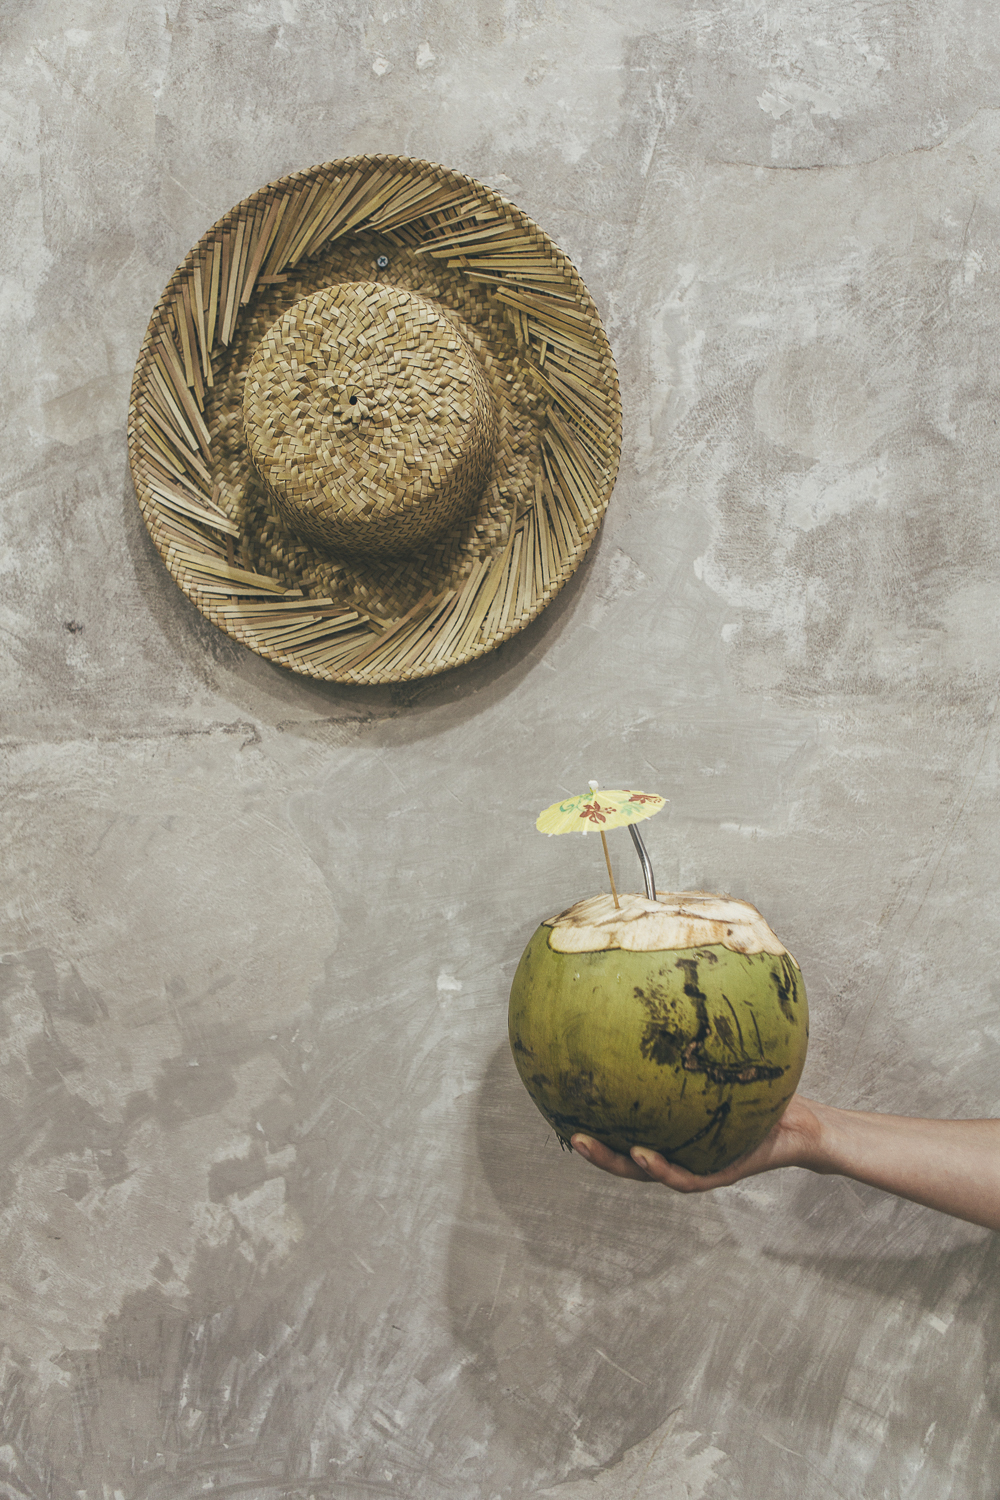 Bali Food guide: The Spicy Coconut